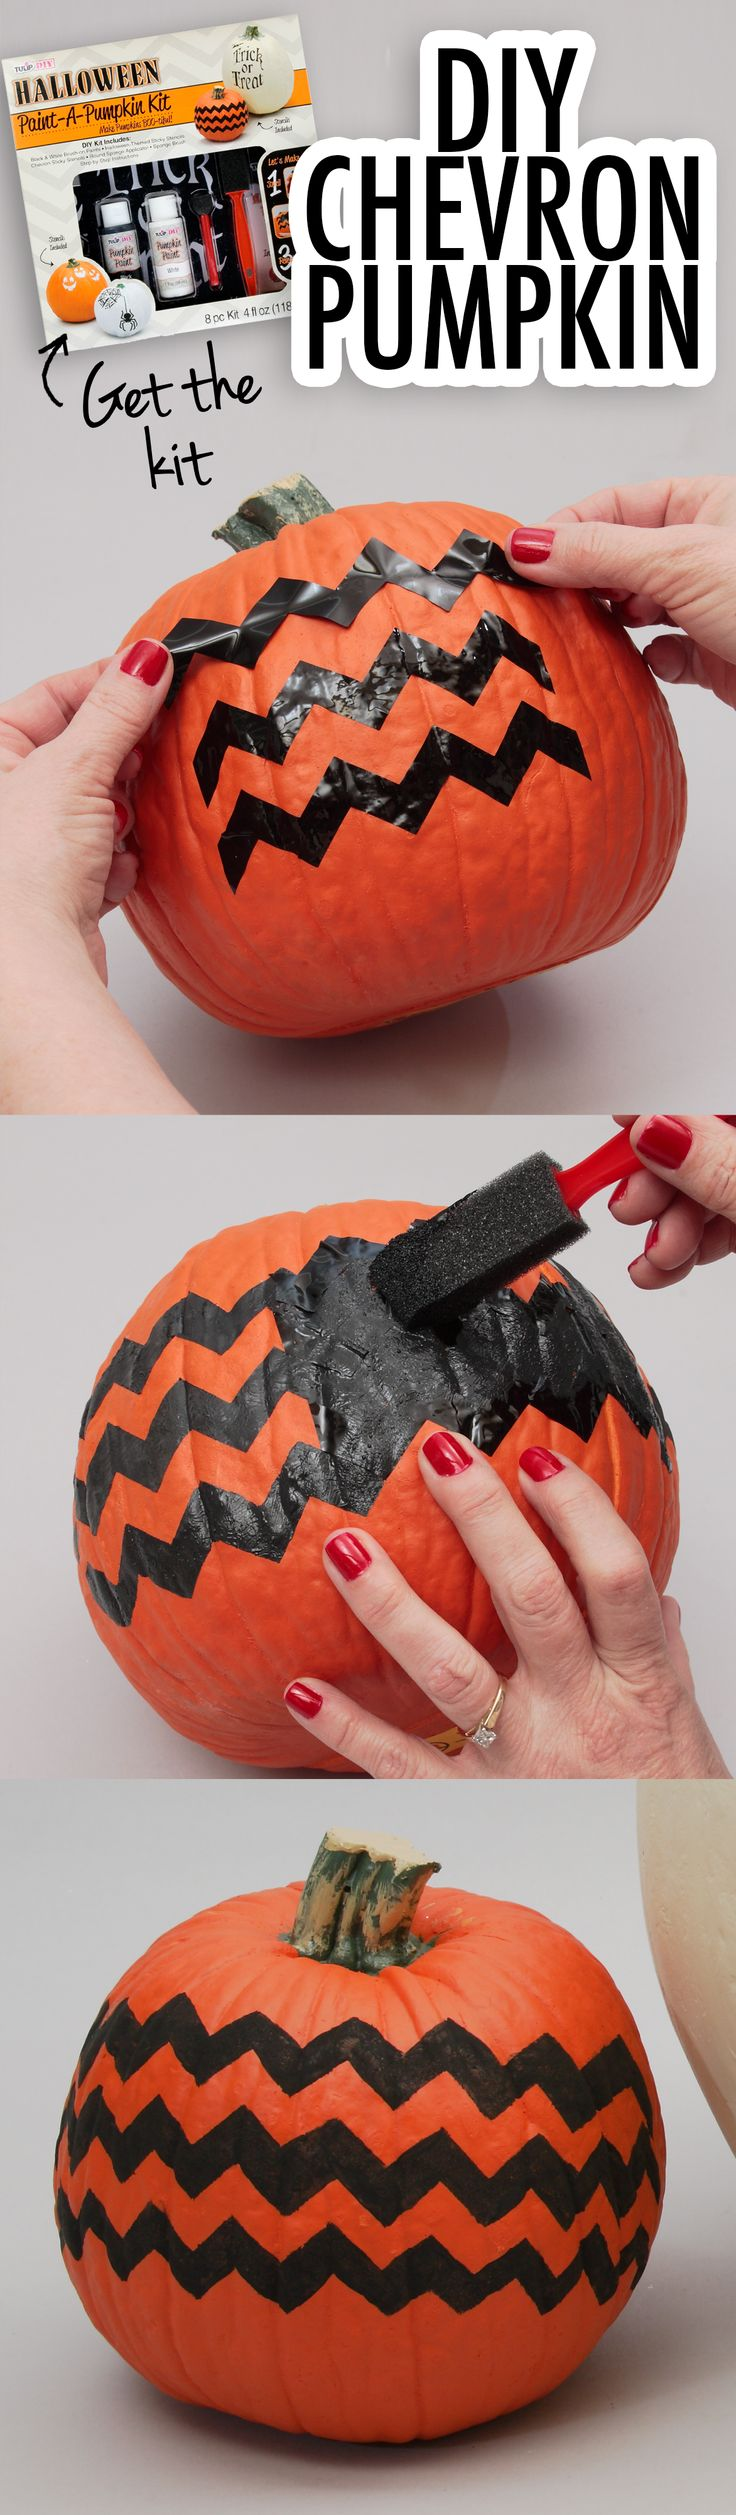 This DIY pumpkin decorating kit is great for anyone who doesn't like to cut pumpkins or scoop seeds! Safe and easy for kids to try, too! Pick up a kit at joann.com or a local Jo-Ann store.